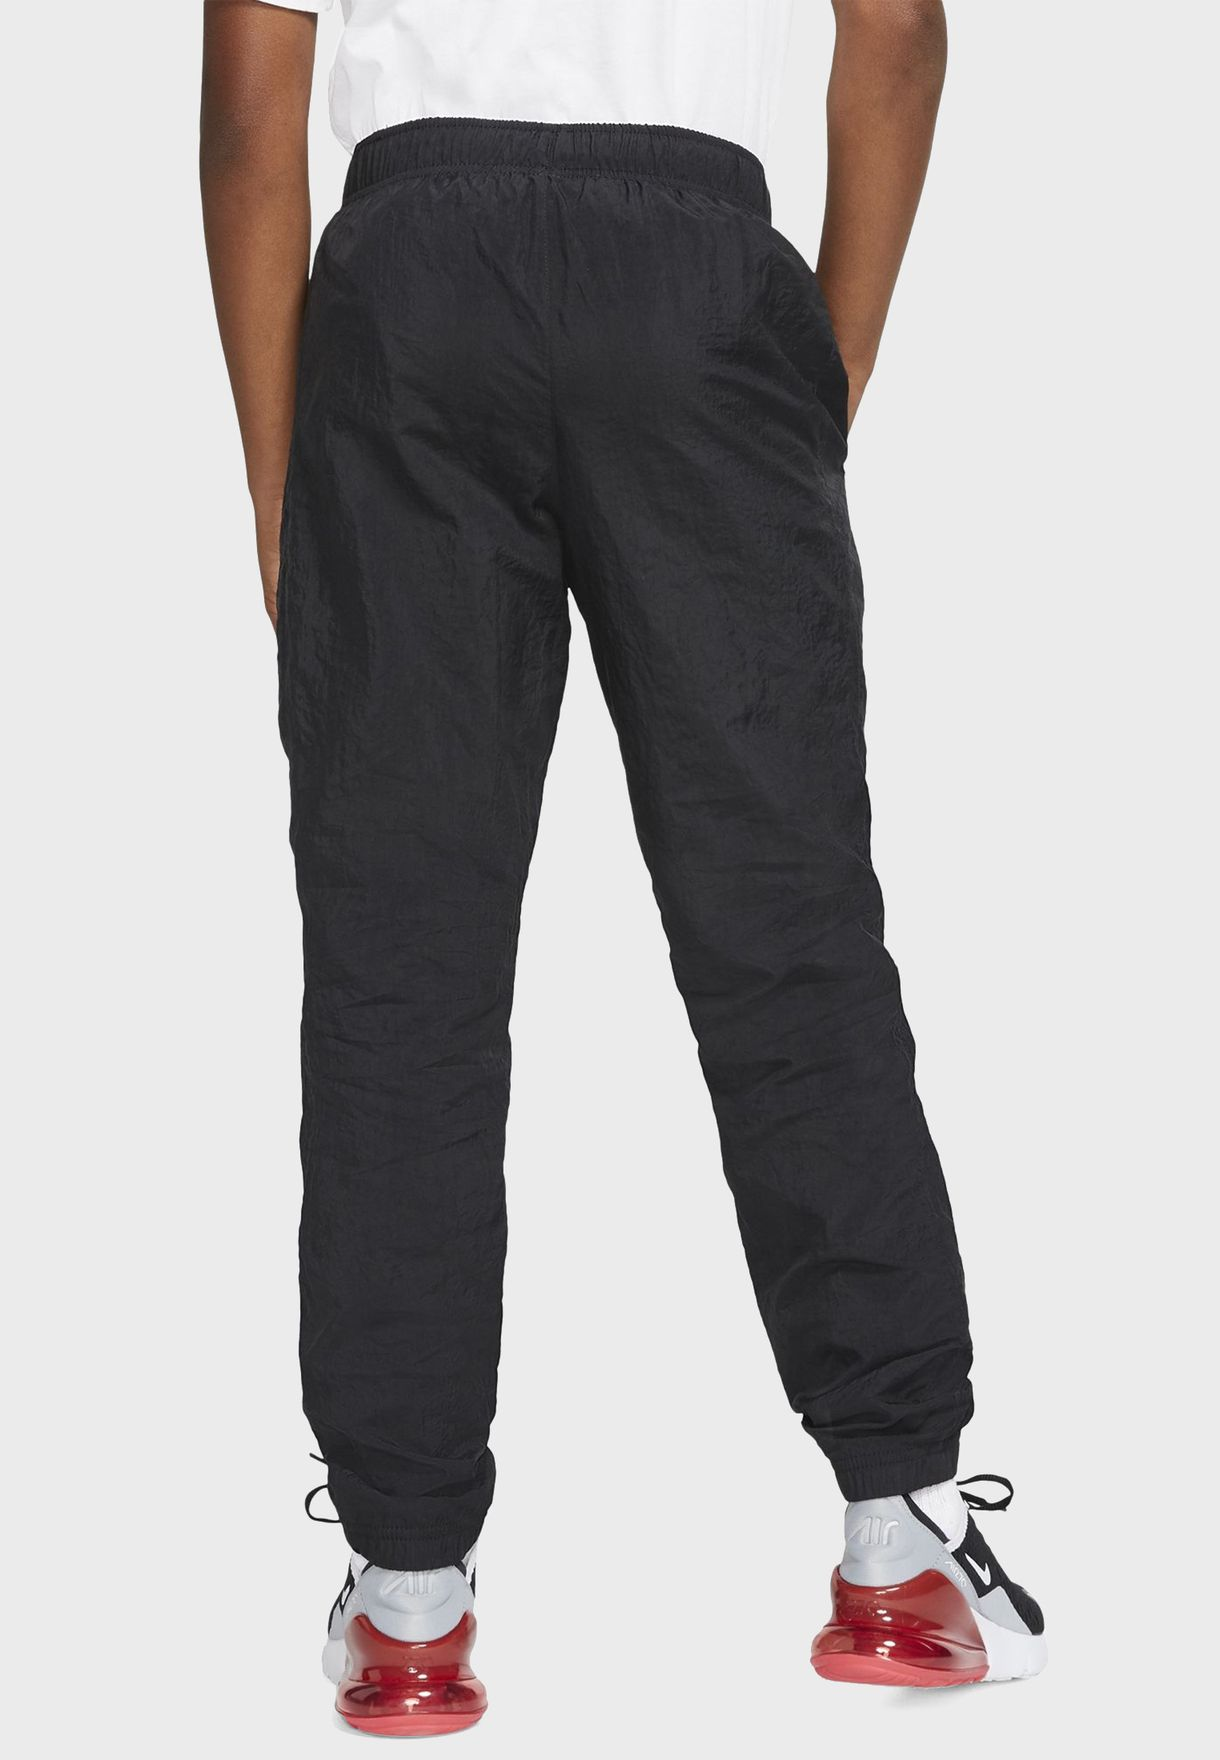 Youth NSW Woven Sweatpants